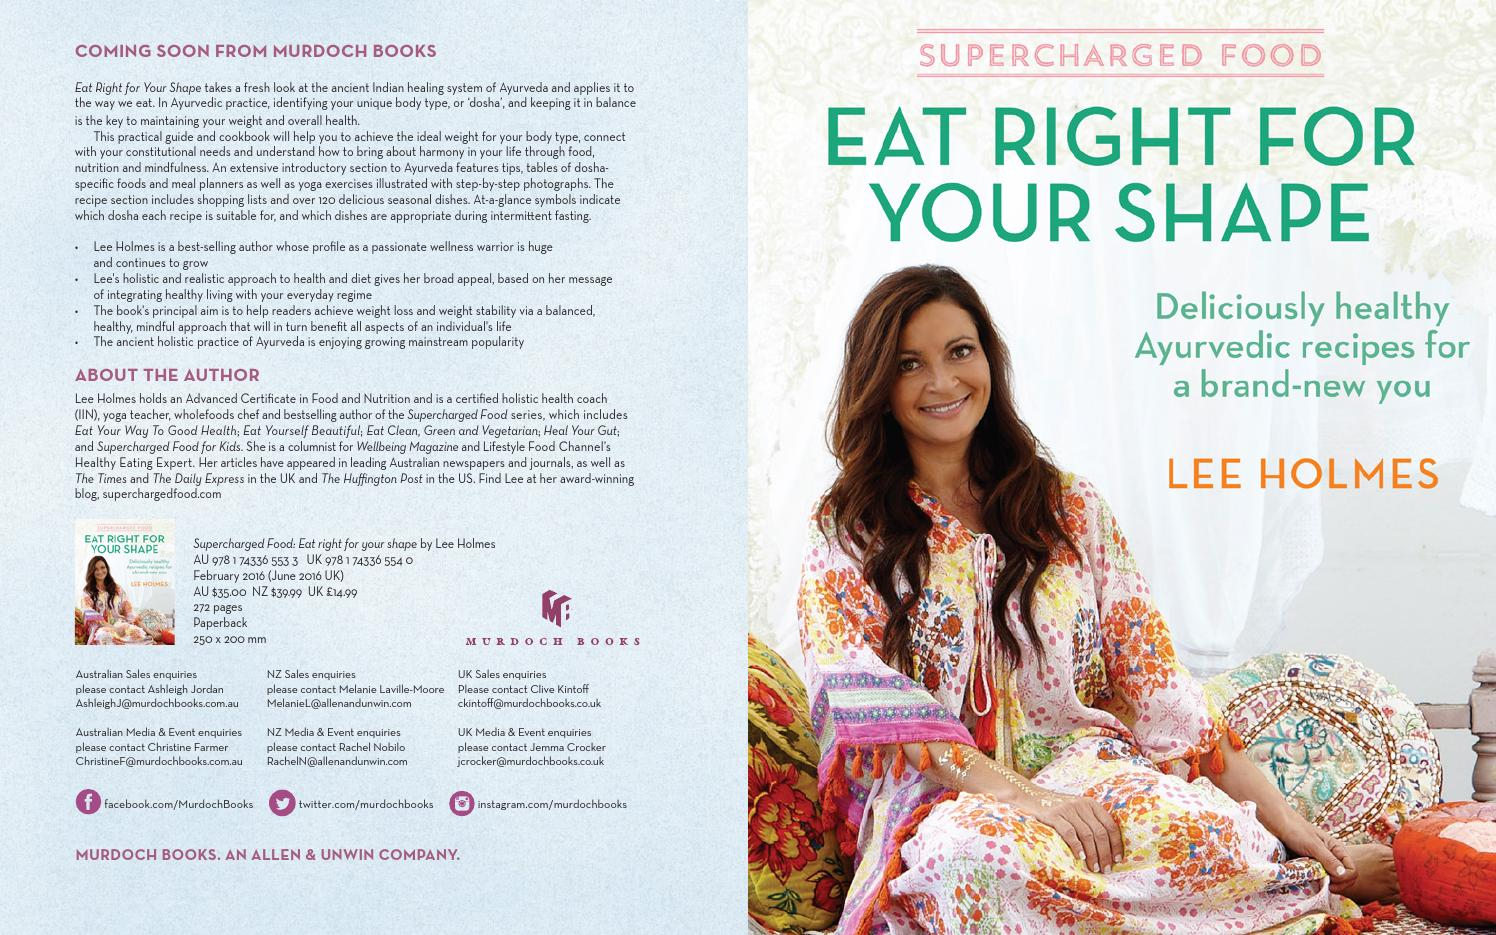 Supercharged food eat right for your shape lee holmes presenter supercharged food eat right for your shape lee holmes presenter february 2016 by murdoch books issuu forumfinder Choice Image